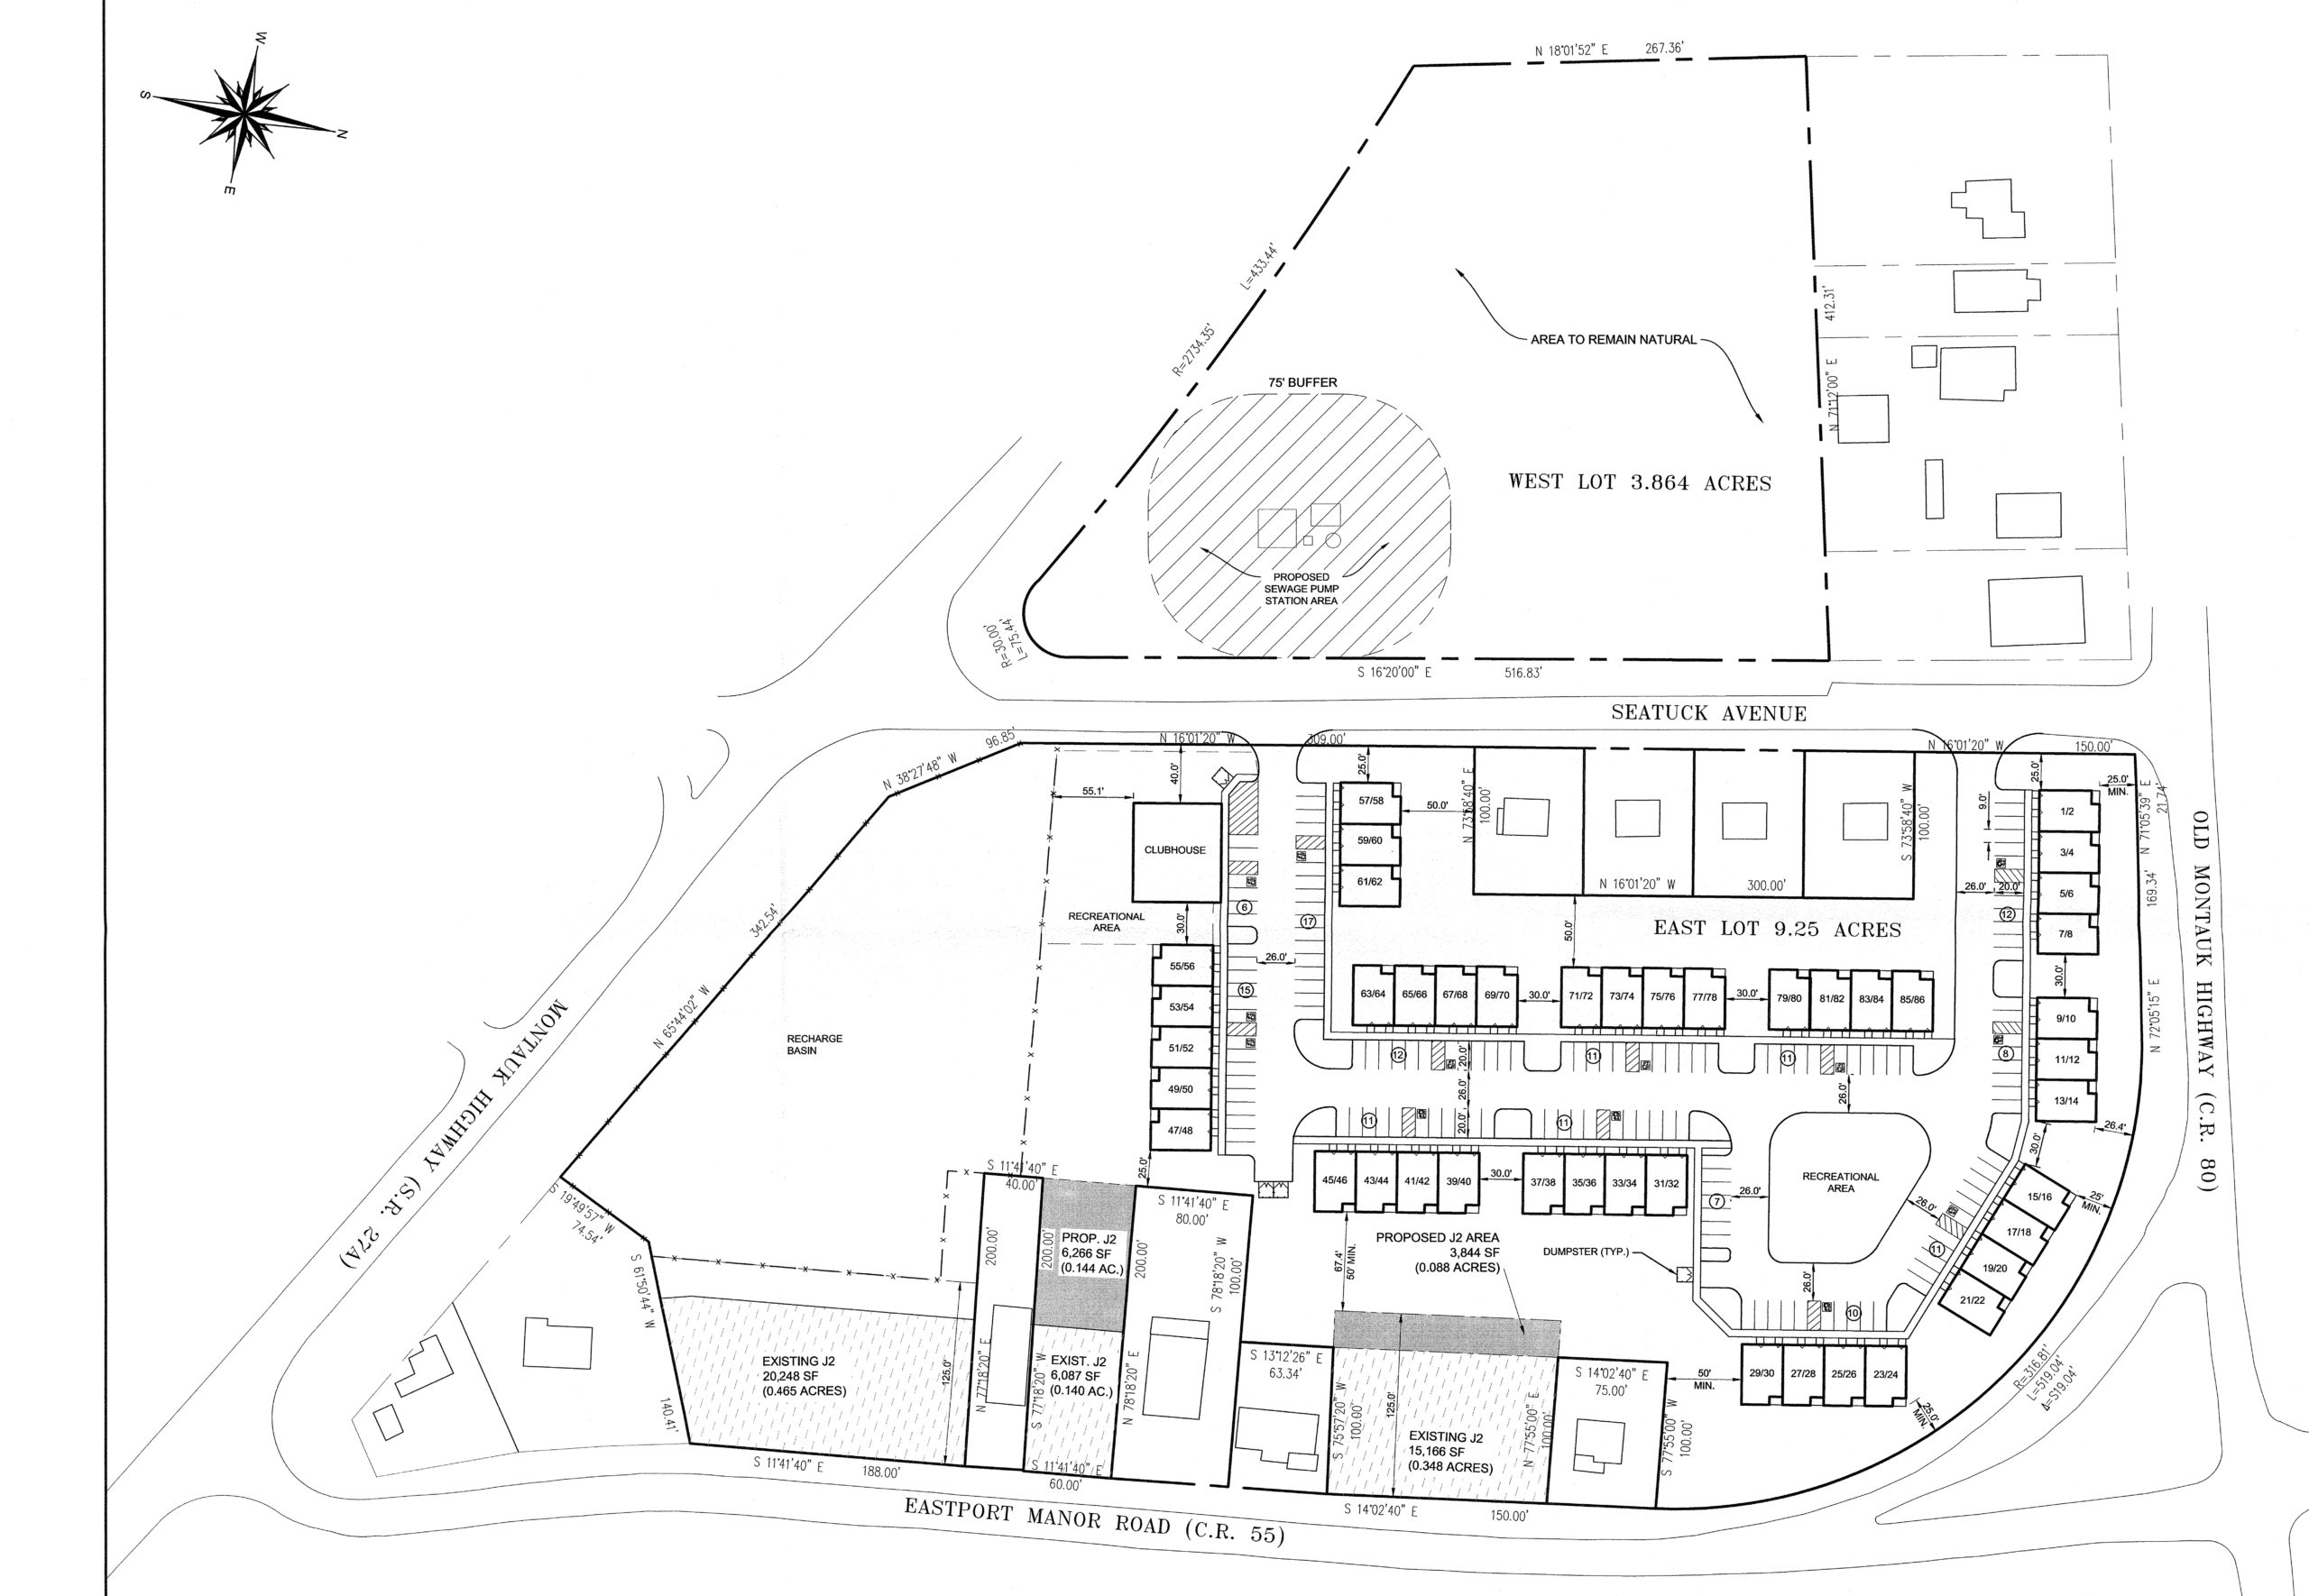 An 86-unit planned retirement community is proposed in Eastport.